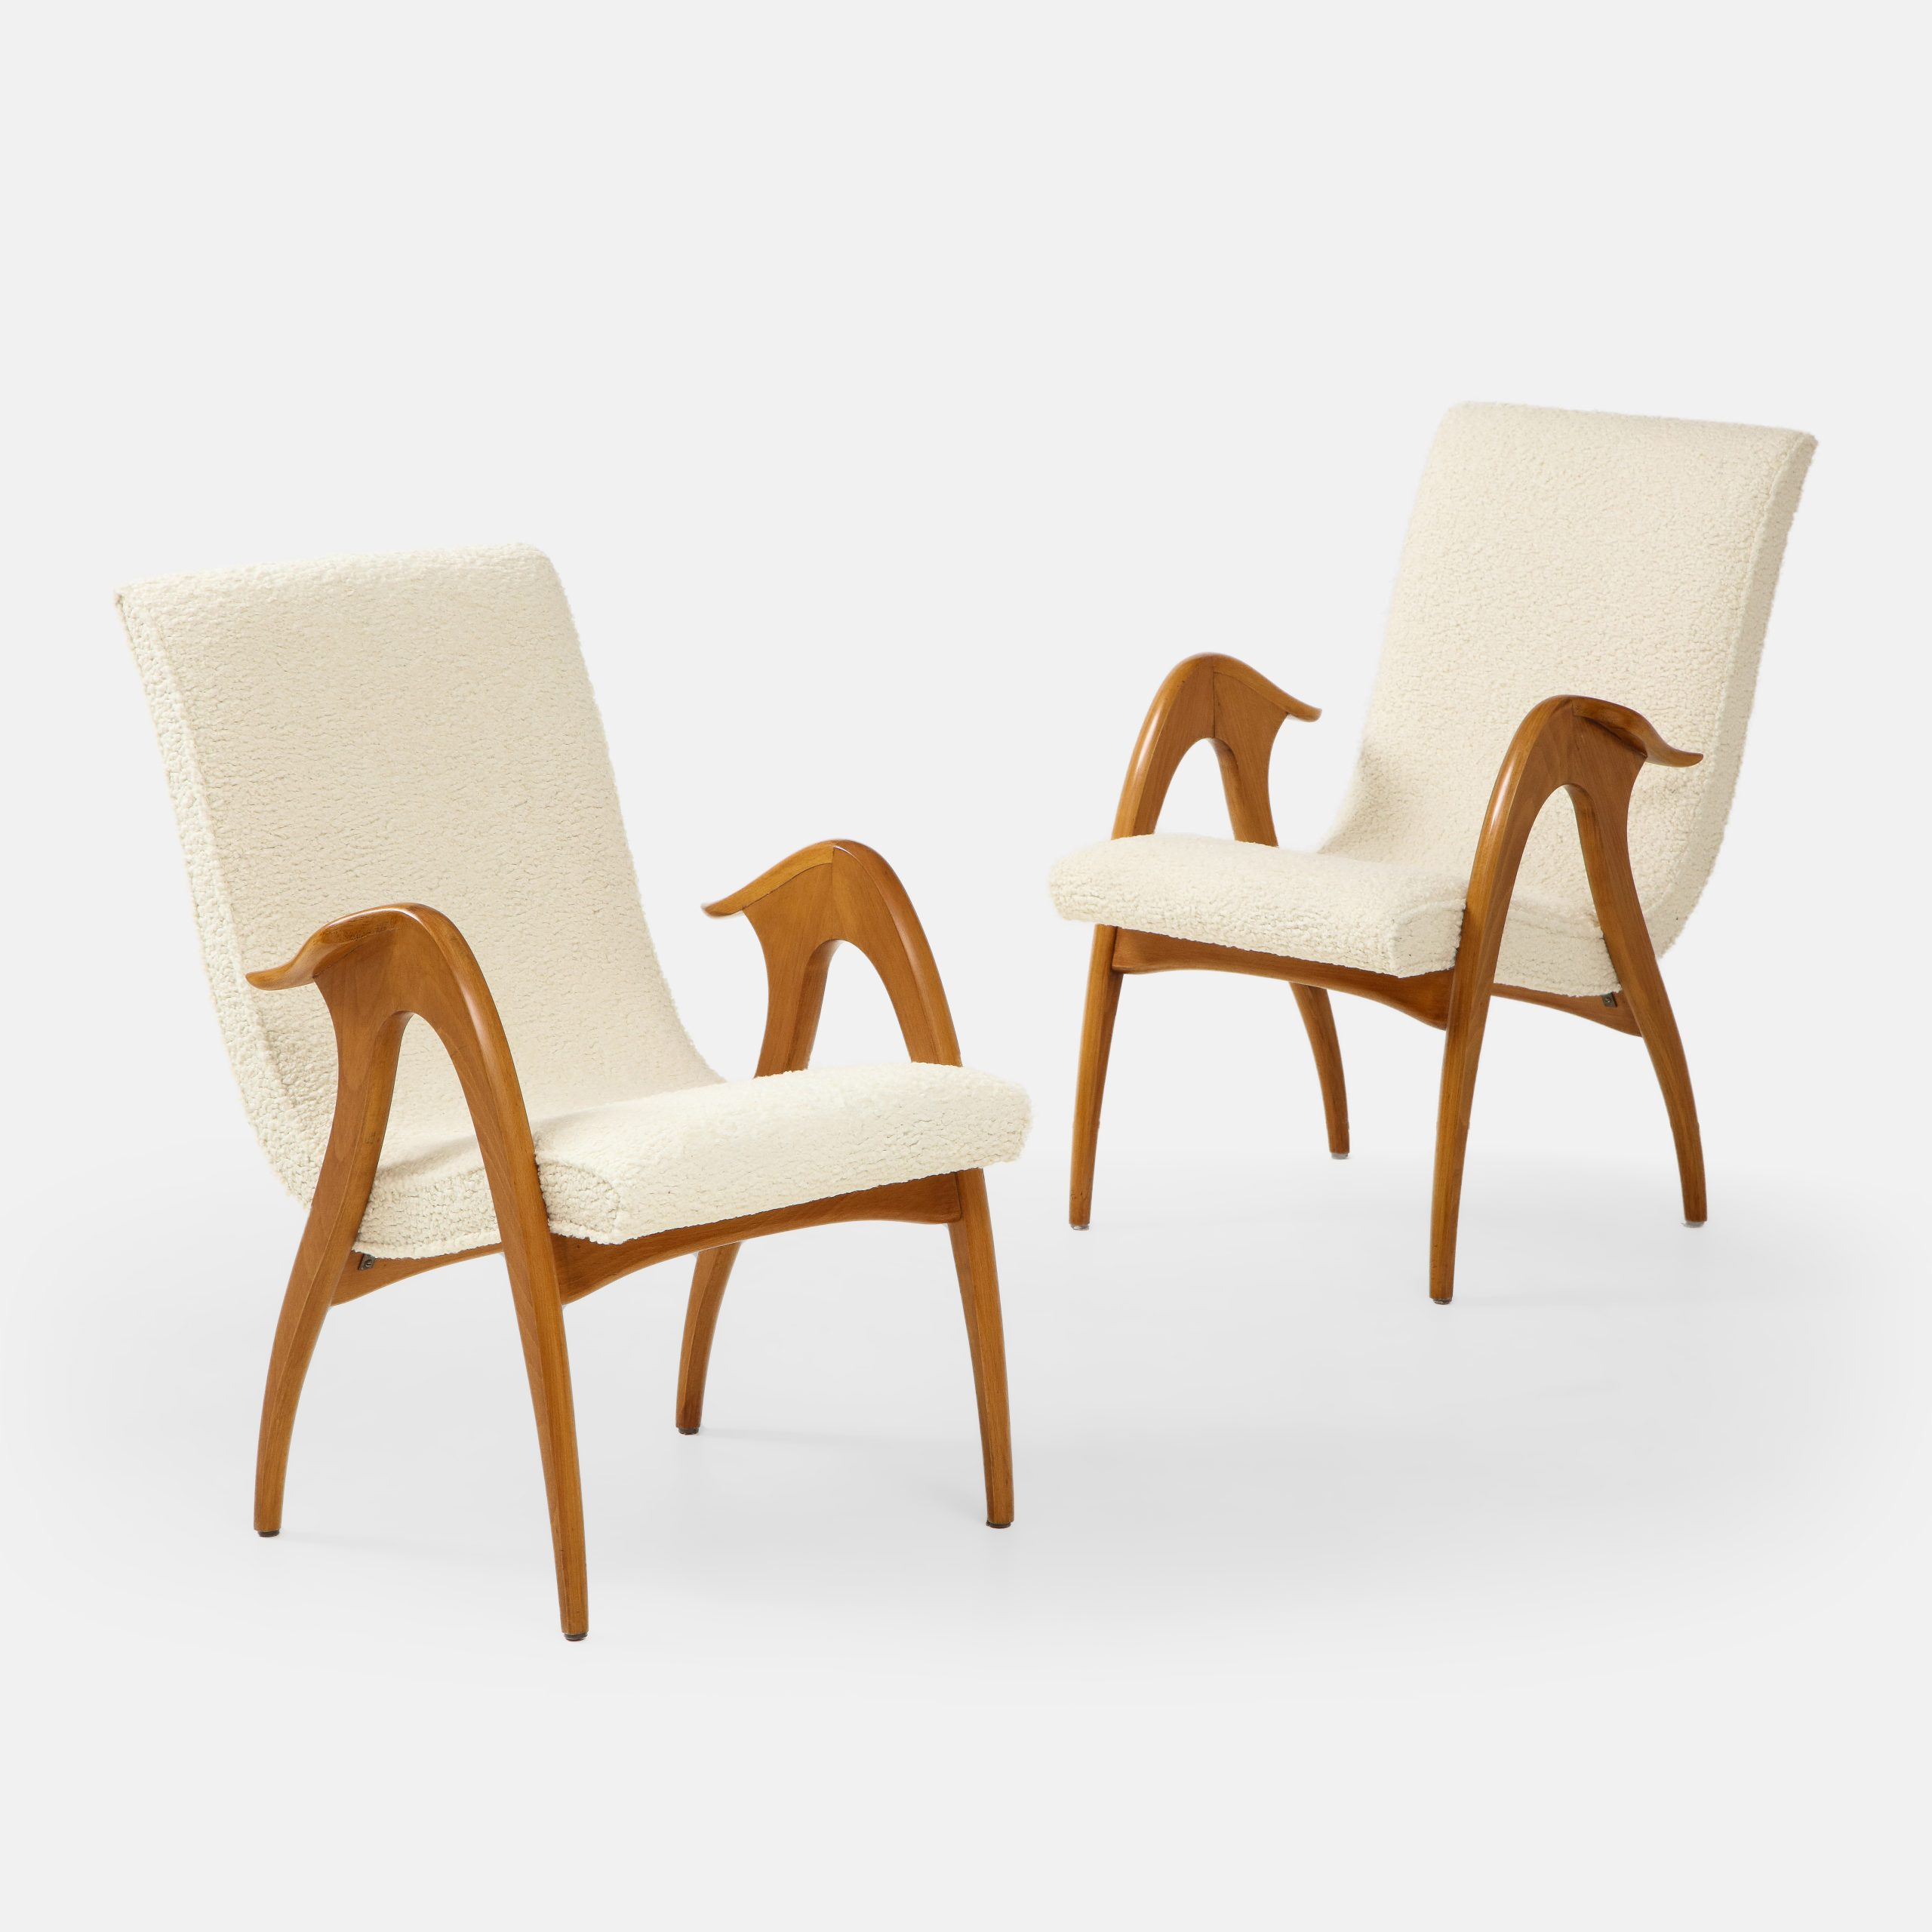 Pair of Sculptural Armchairs in Ivory Bouclé by Malatesta and Mason | soyun k.